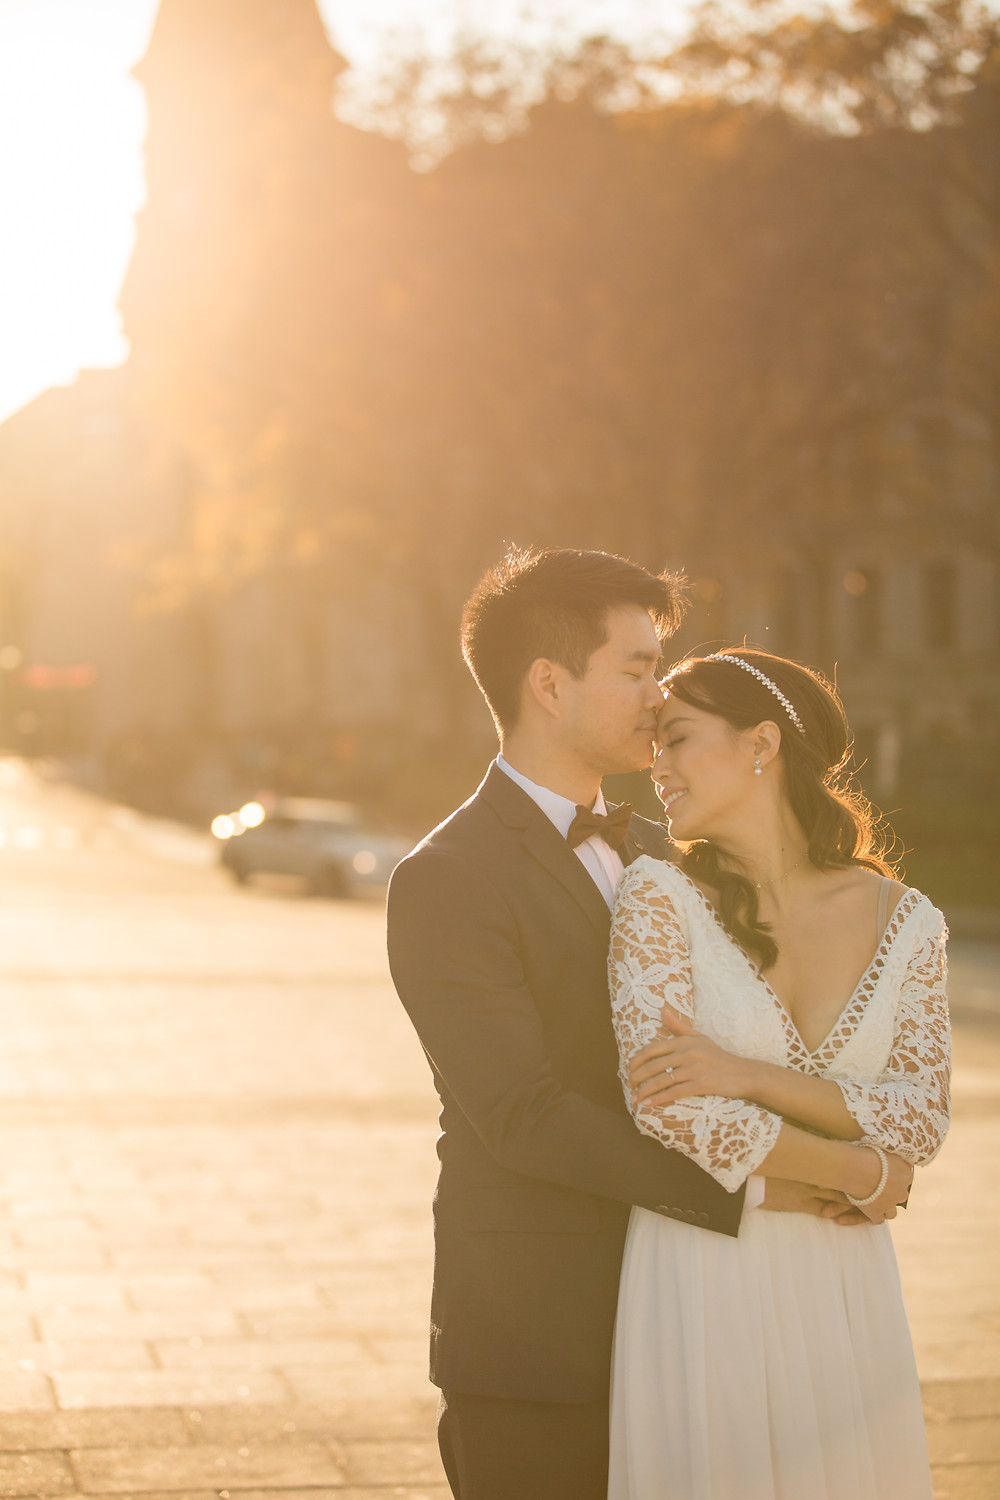 Quebec city Pre-wedding session